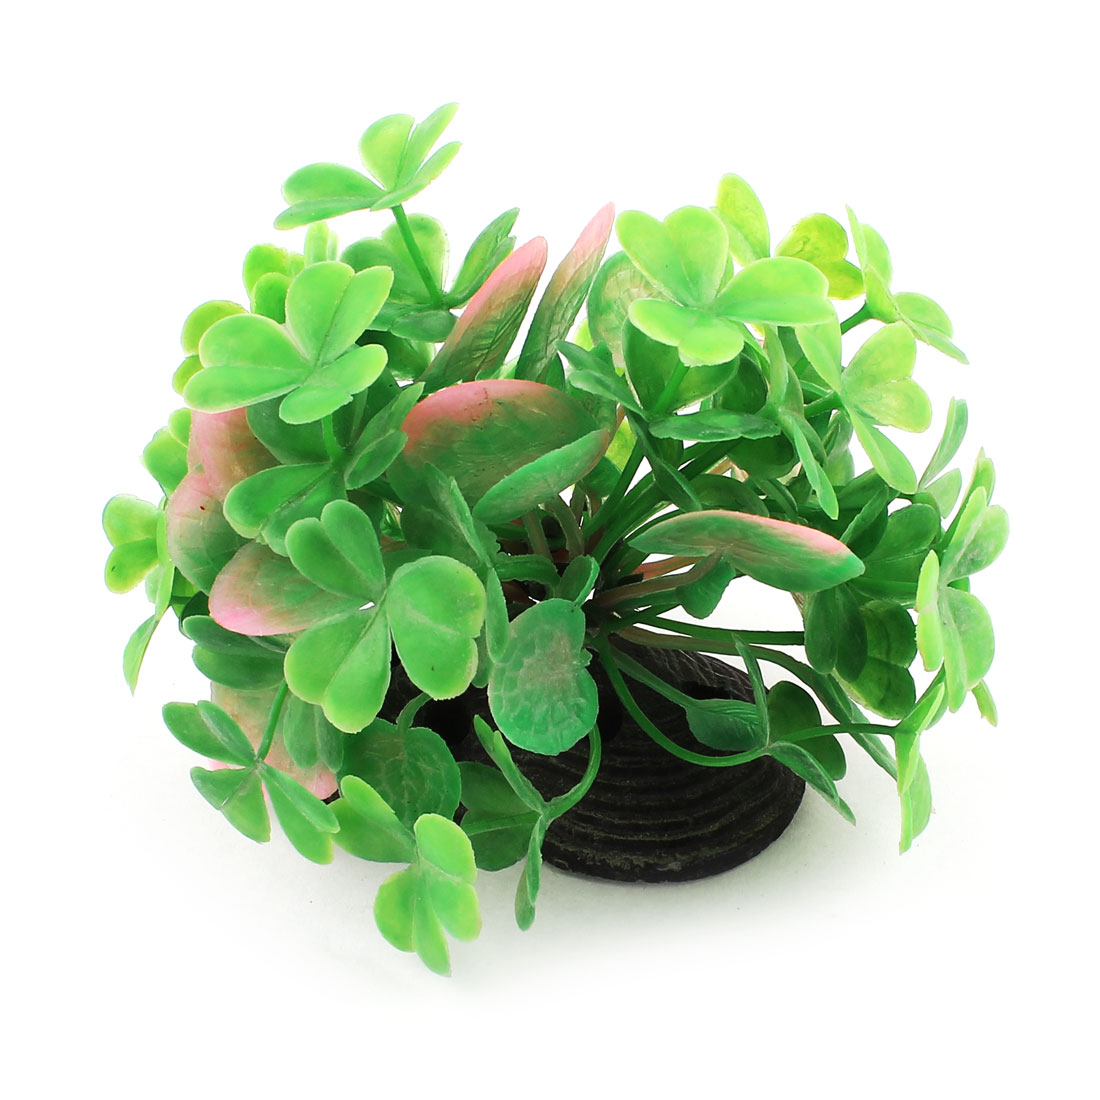 "Aquarium Artificial Green Underwater Aquatic Glass Plant Ornament 3"" High"